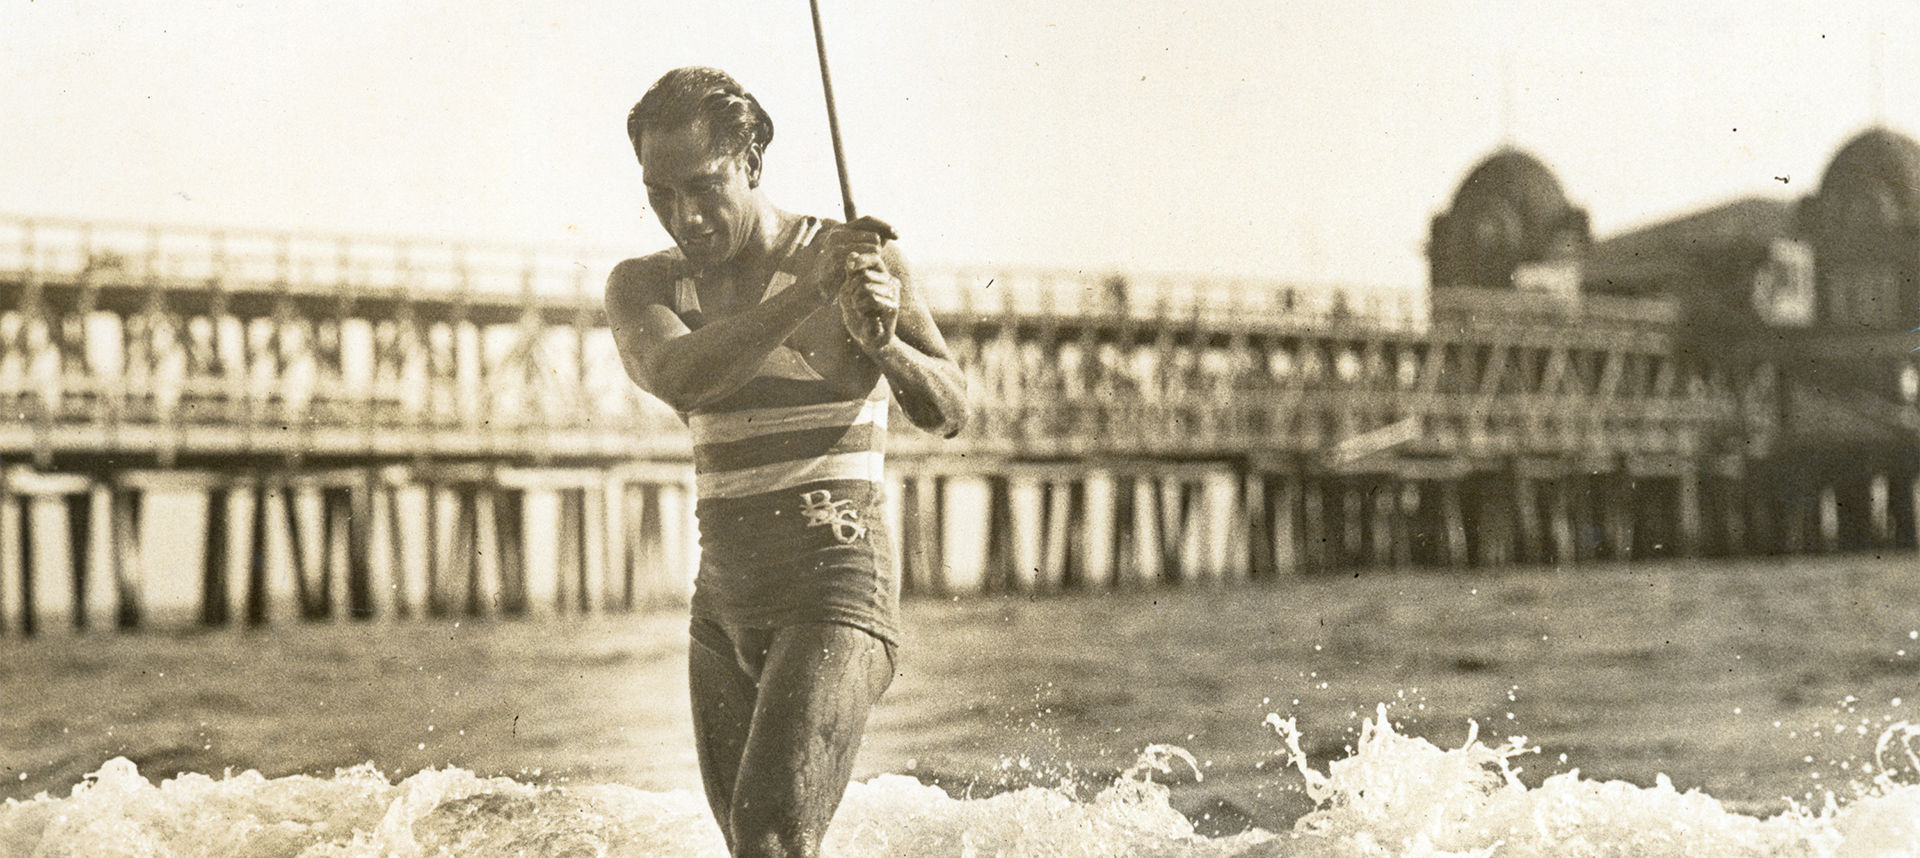 Duke exiting the ocean with stick in hand